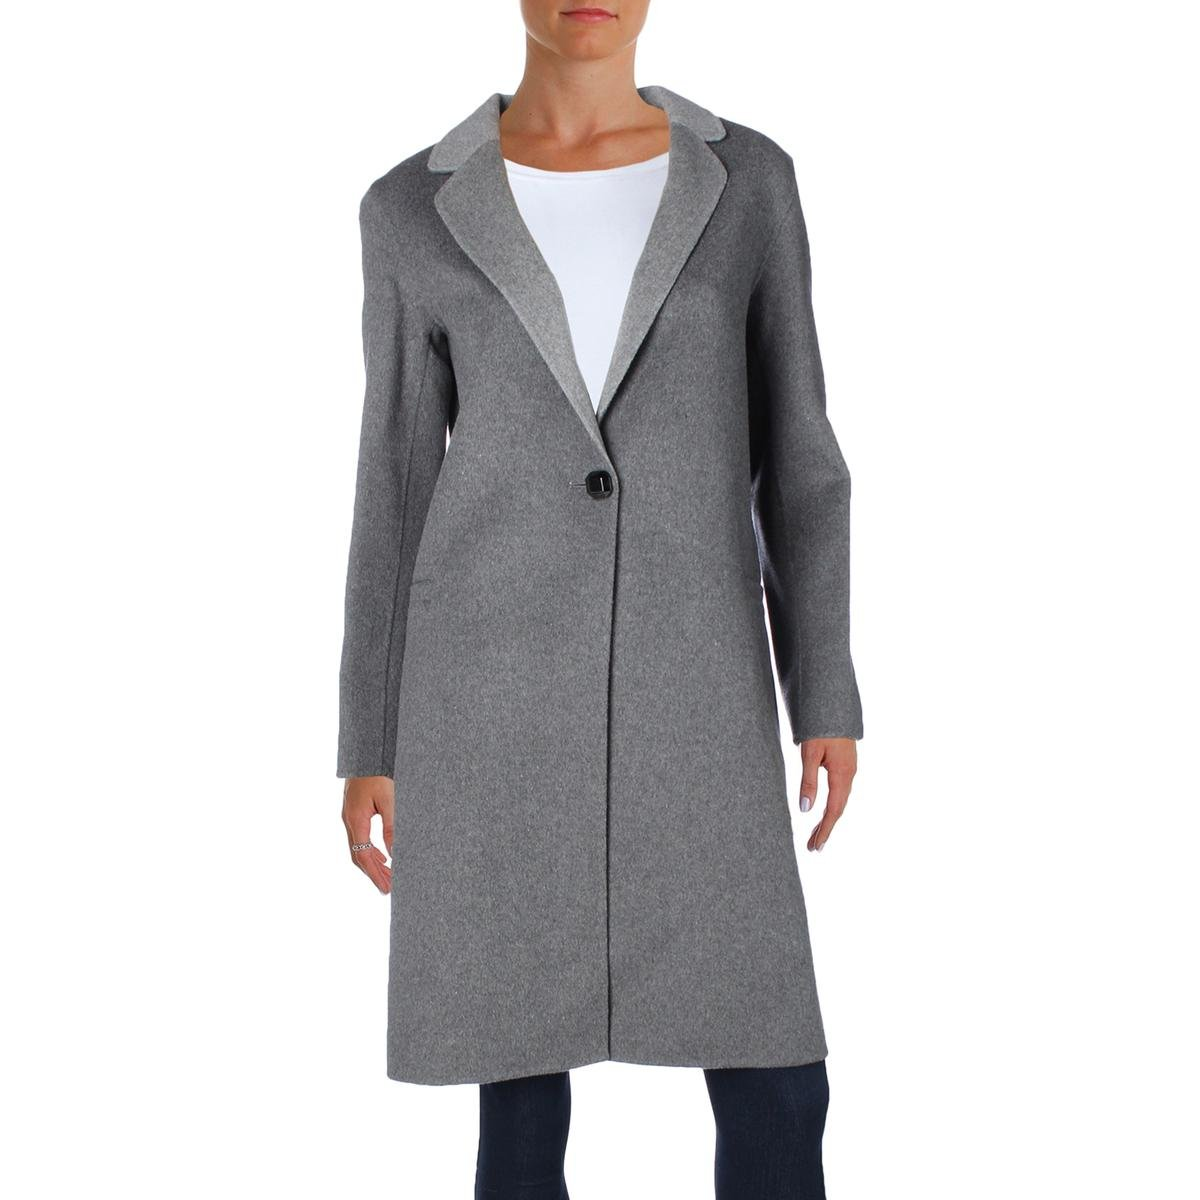 Nanette Lepore Women's Elegant Double Faced Single Breasted Wool Blend Coat, Heather Grey, X-Large